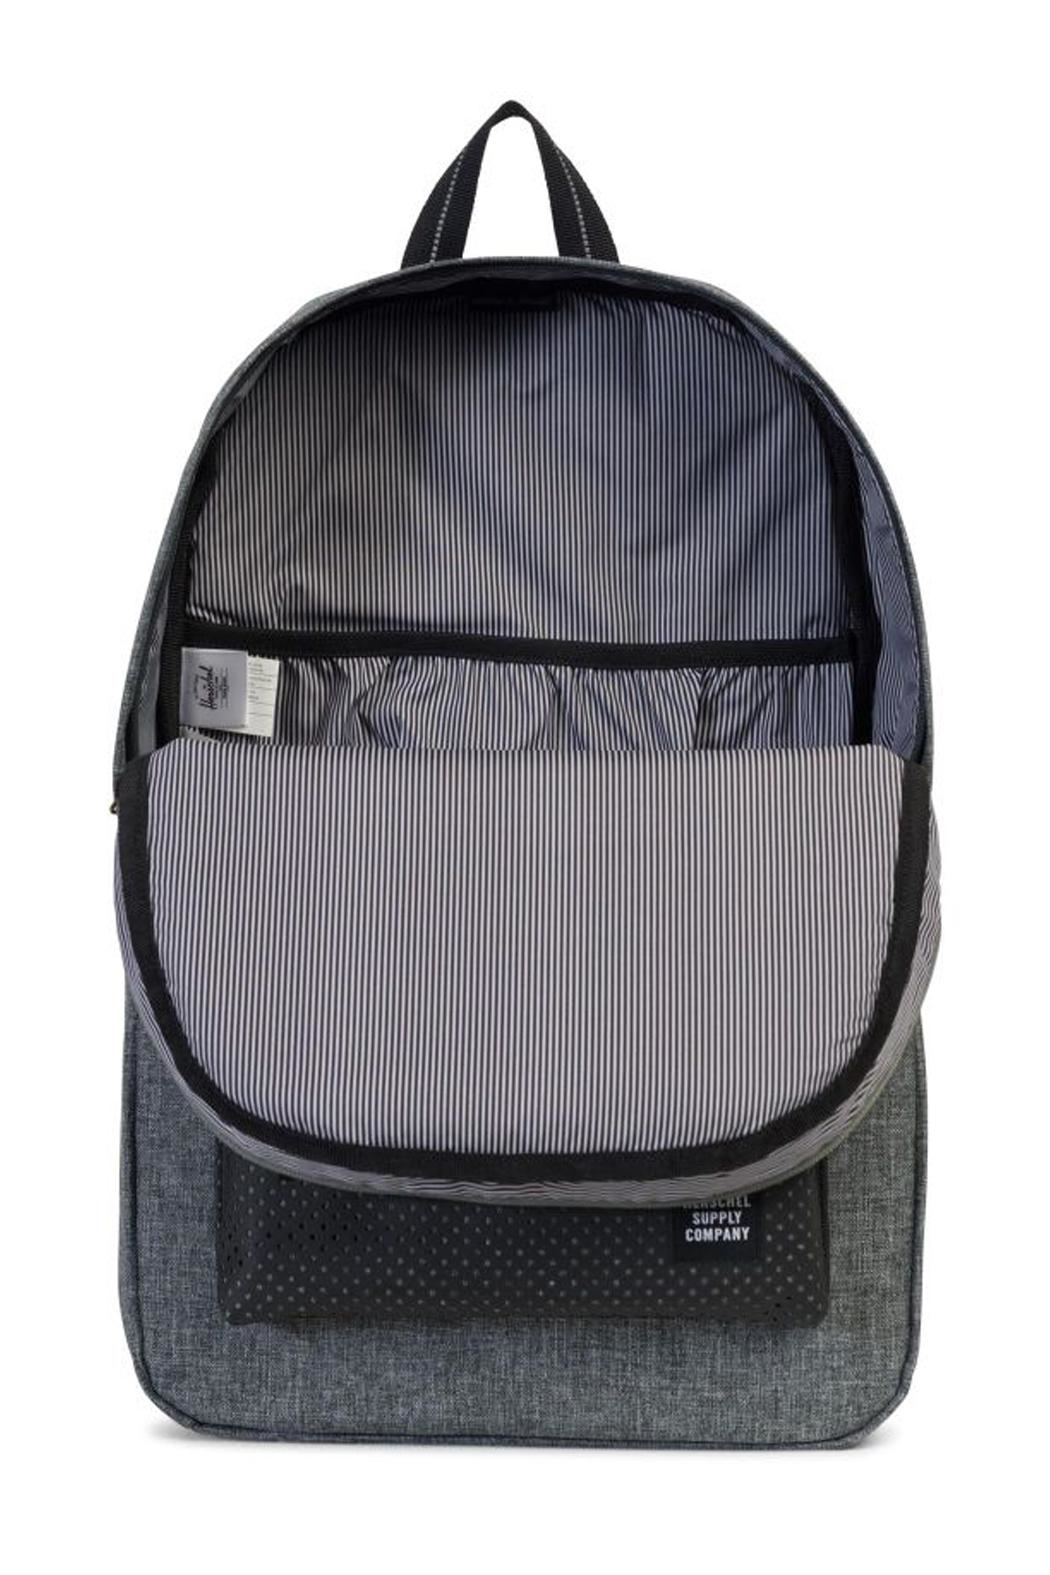 Herschel Supply Co. Raven Heritage Backpack - Front Full Image